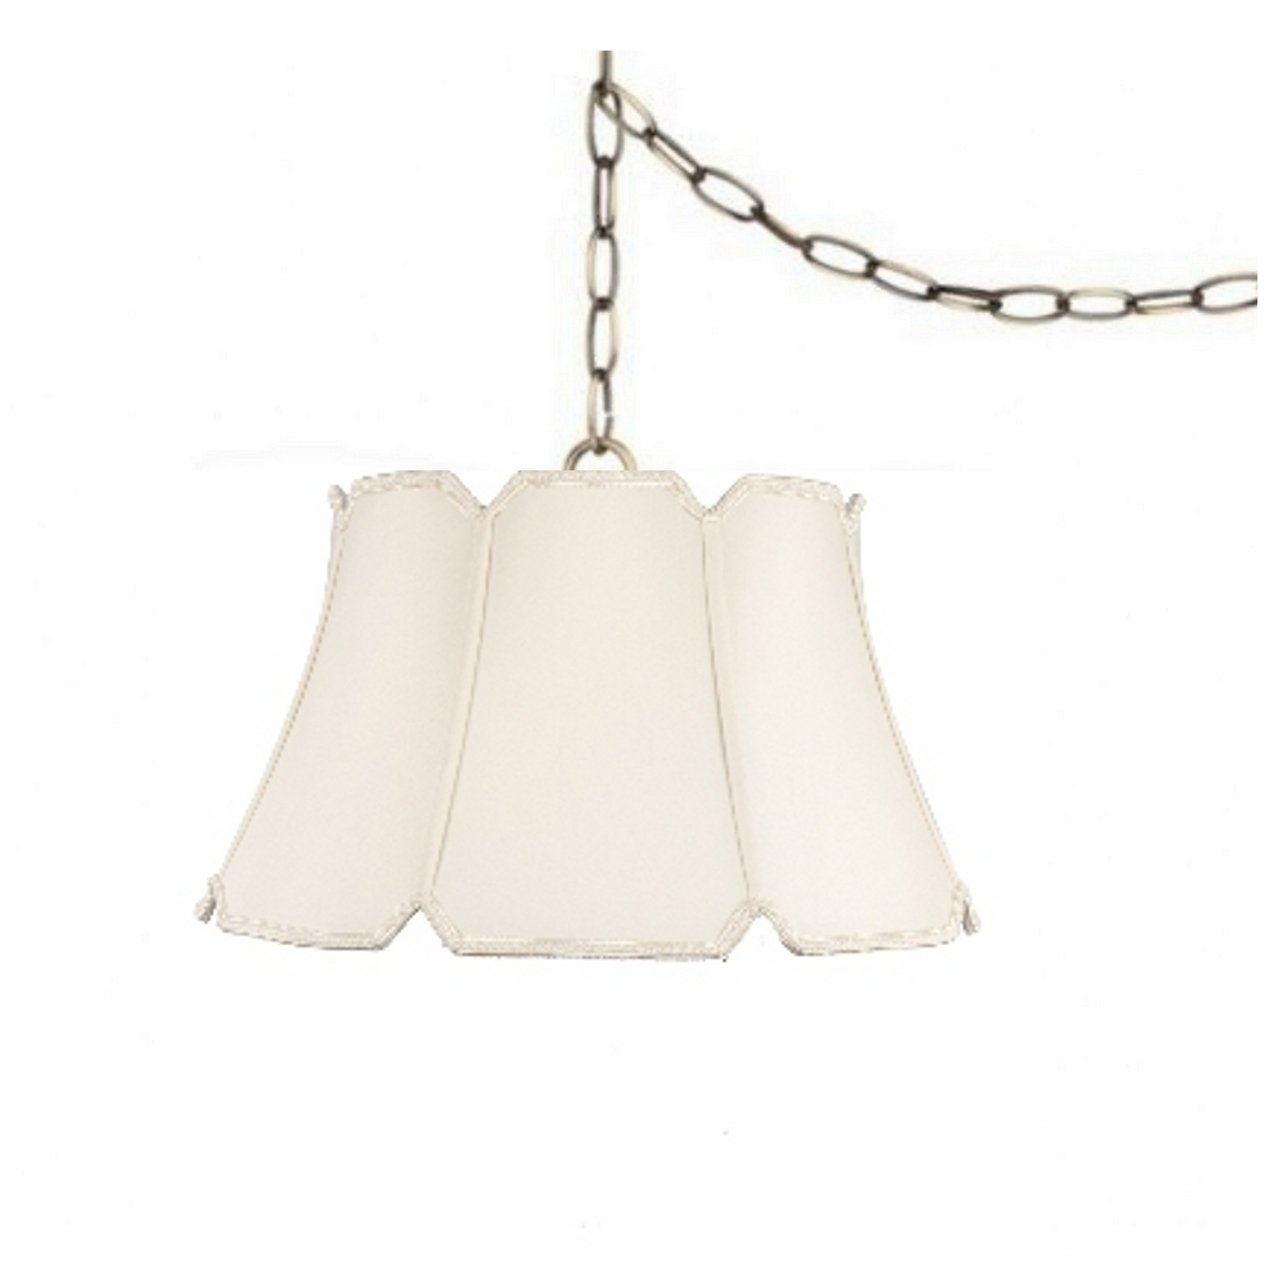 Upgradelights Eggshell Silk 19 Inch Swag L& Hanging Light Portable Plug in L& - Ceiling Pendant Fixtures - Amazon.com  sc 1 st  Amazon.com & Upgradelights Eggshell Silk 19 Inch Swag Lamp Hanging Light ... azcodes.com